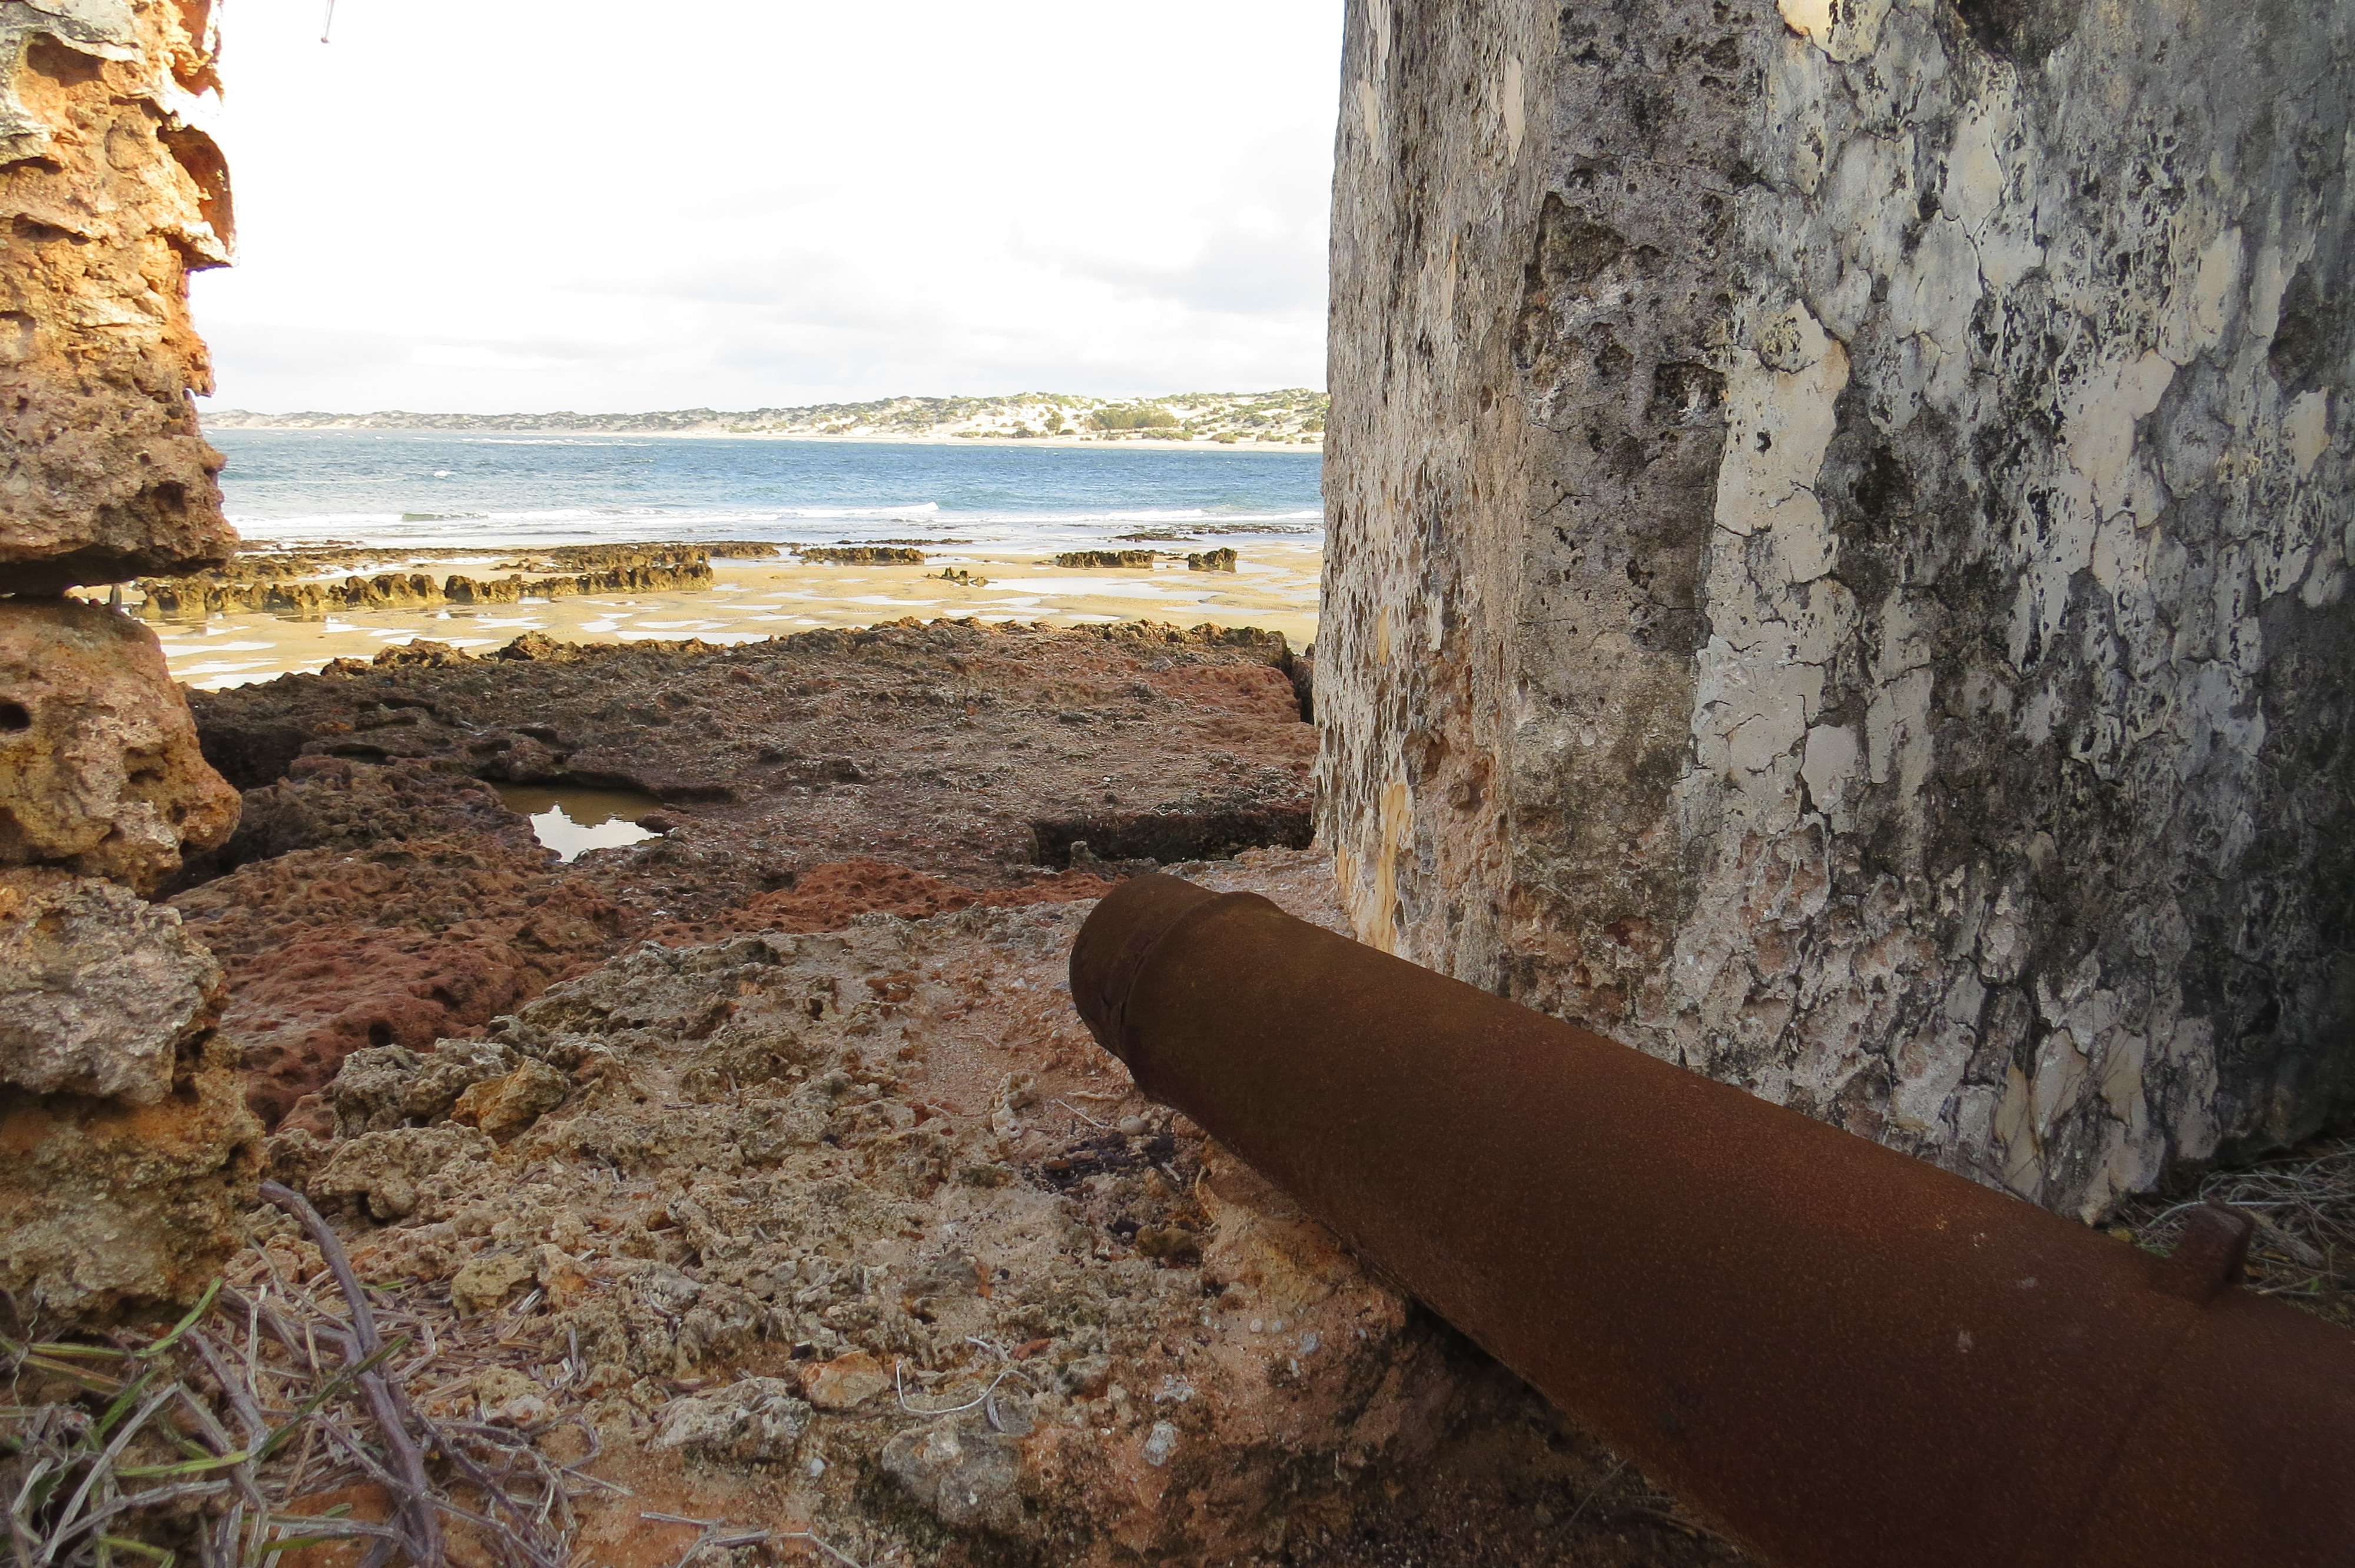 Centuries-old fort on Manda island with canon pointing to the sea to ward off unwanted 'guests'. Copyright Rupi Mangat